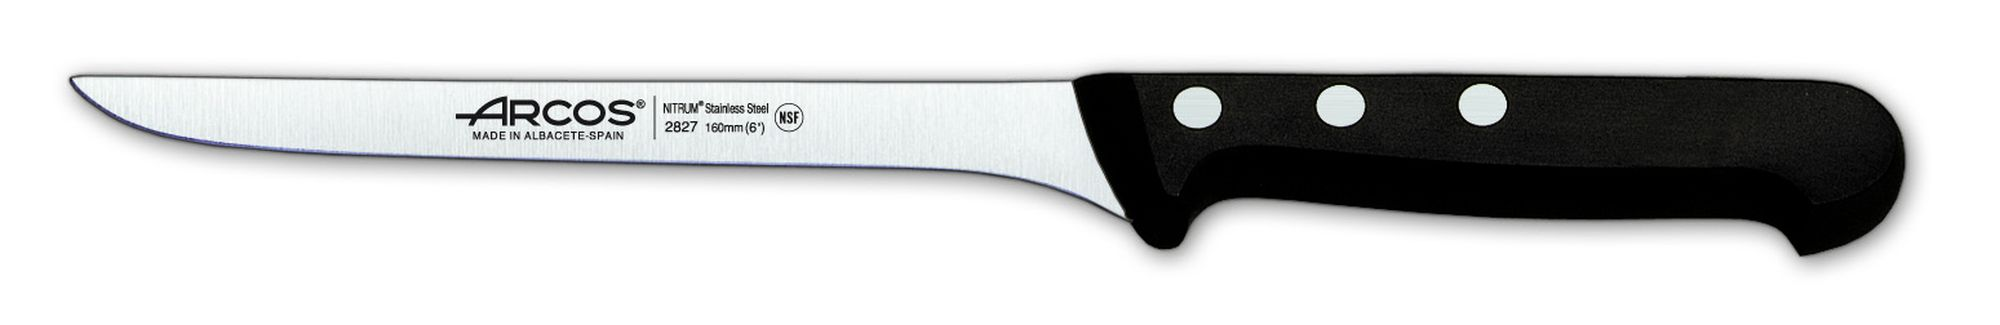 Cuchillo Fileteador - Flexible Arcos ref.: 282704